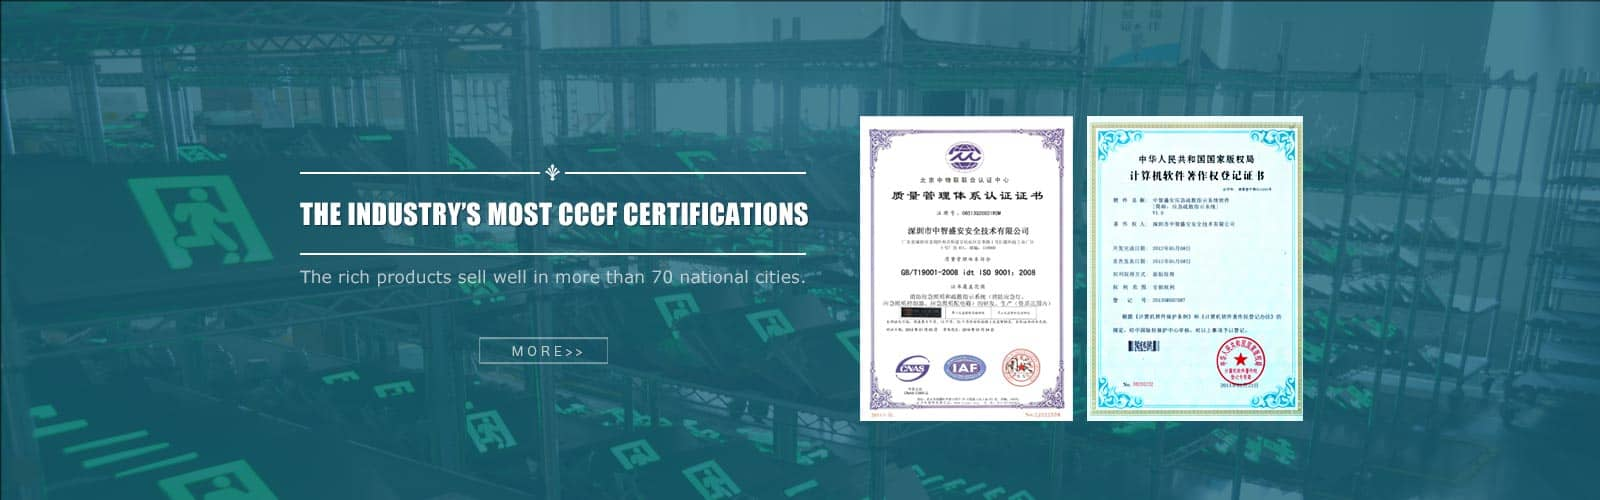 THE INDUSTRY'S MOST CCCF certi